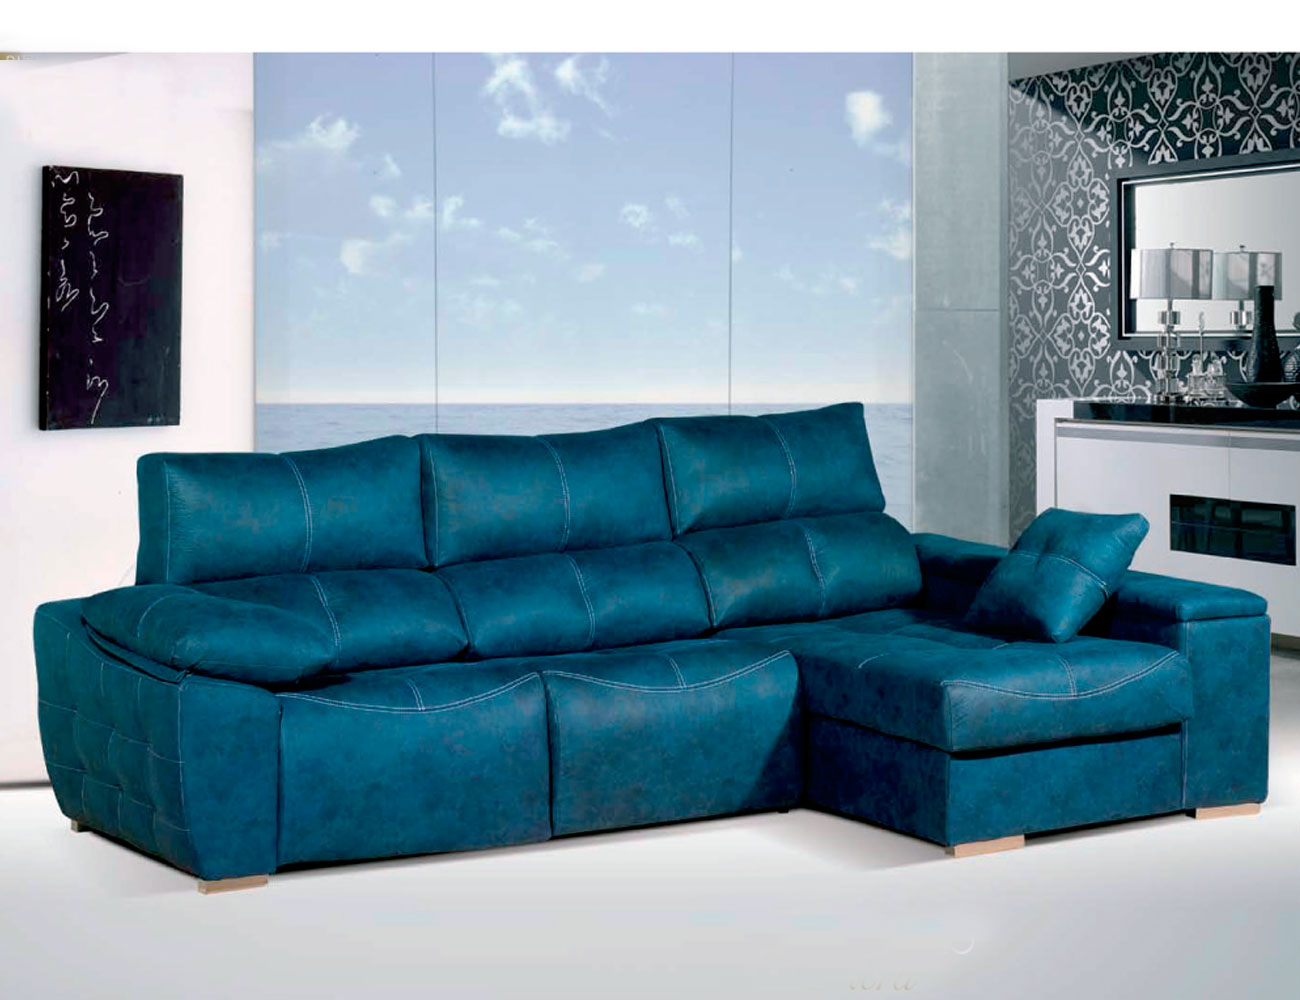 Sofa chaiselongue relax 2 motores anti manchas turquesa15